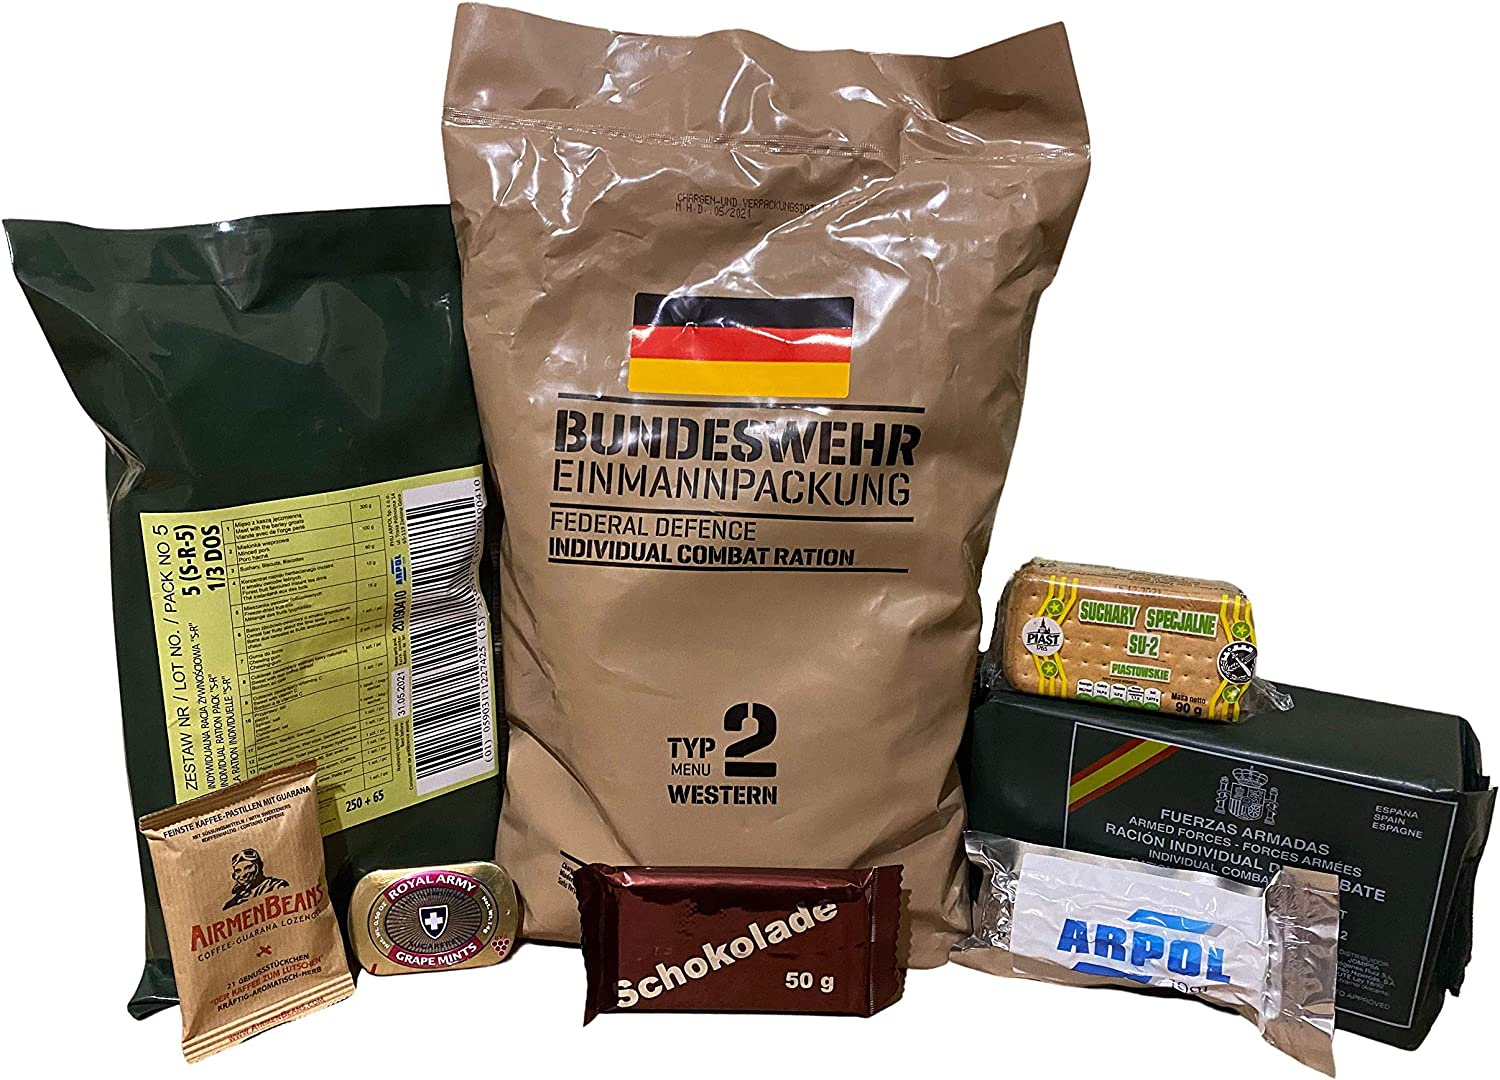 CRAZY BUNDLE OF RATIONS GERMAN+SPANISH+POLISH MRE+5 GOODIES ARMY MEAL READY TO EAT